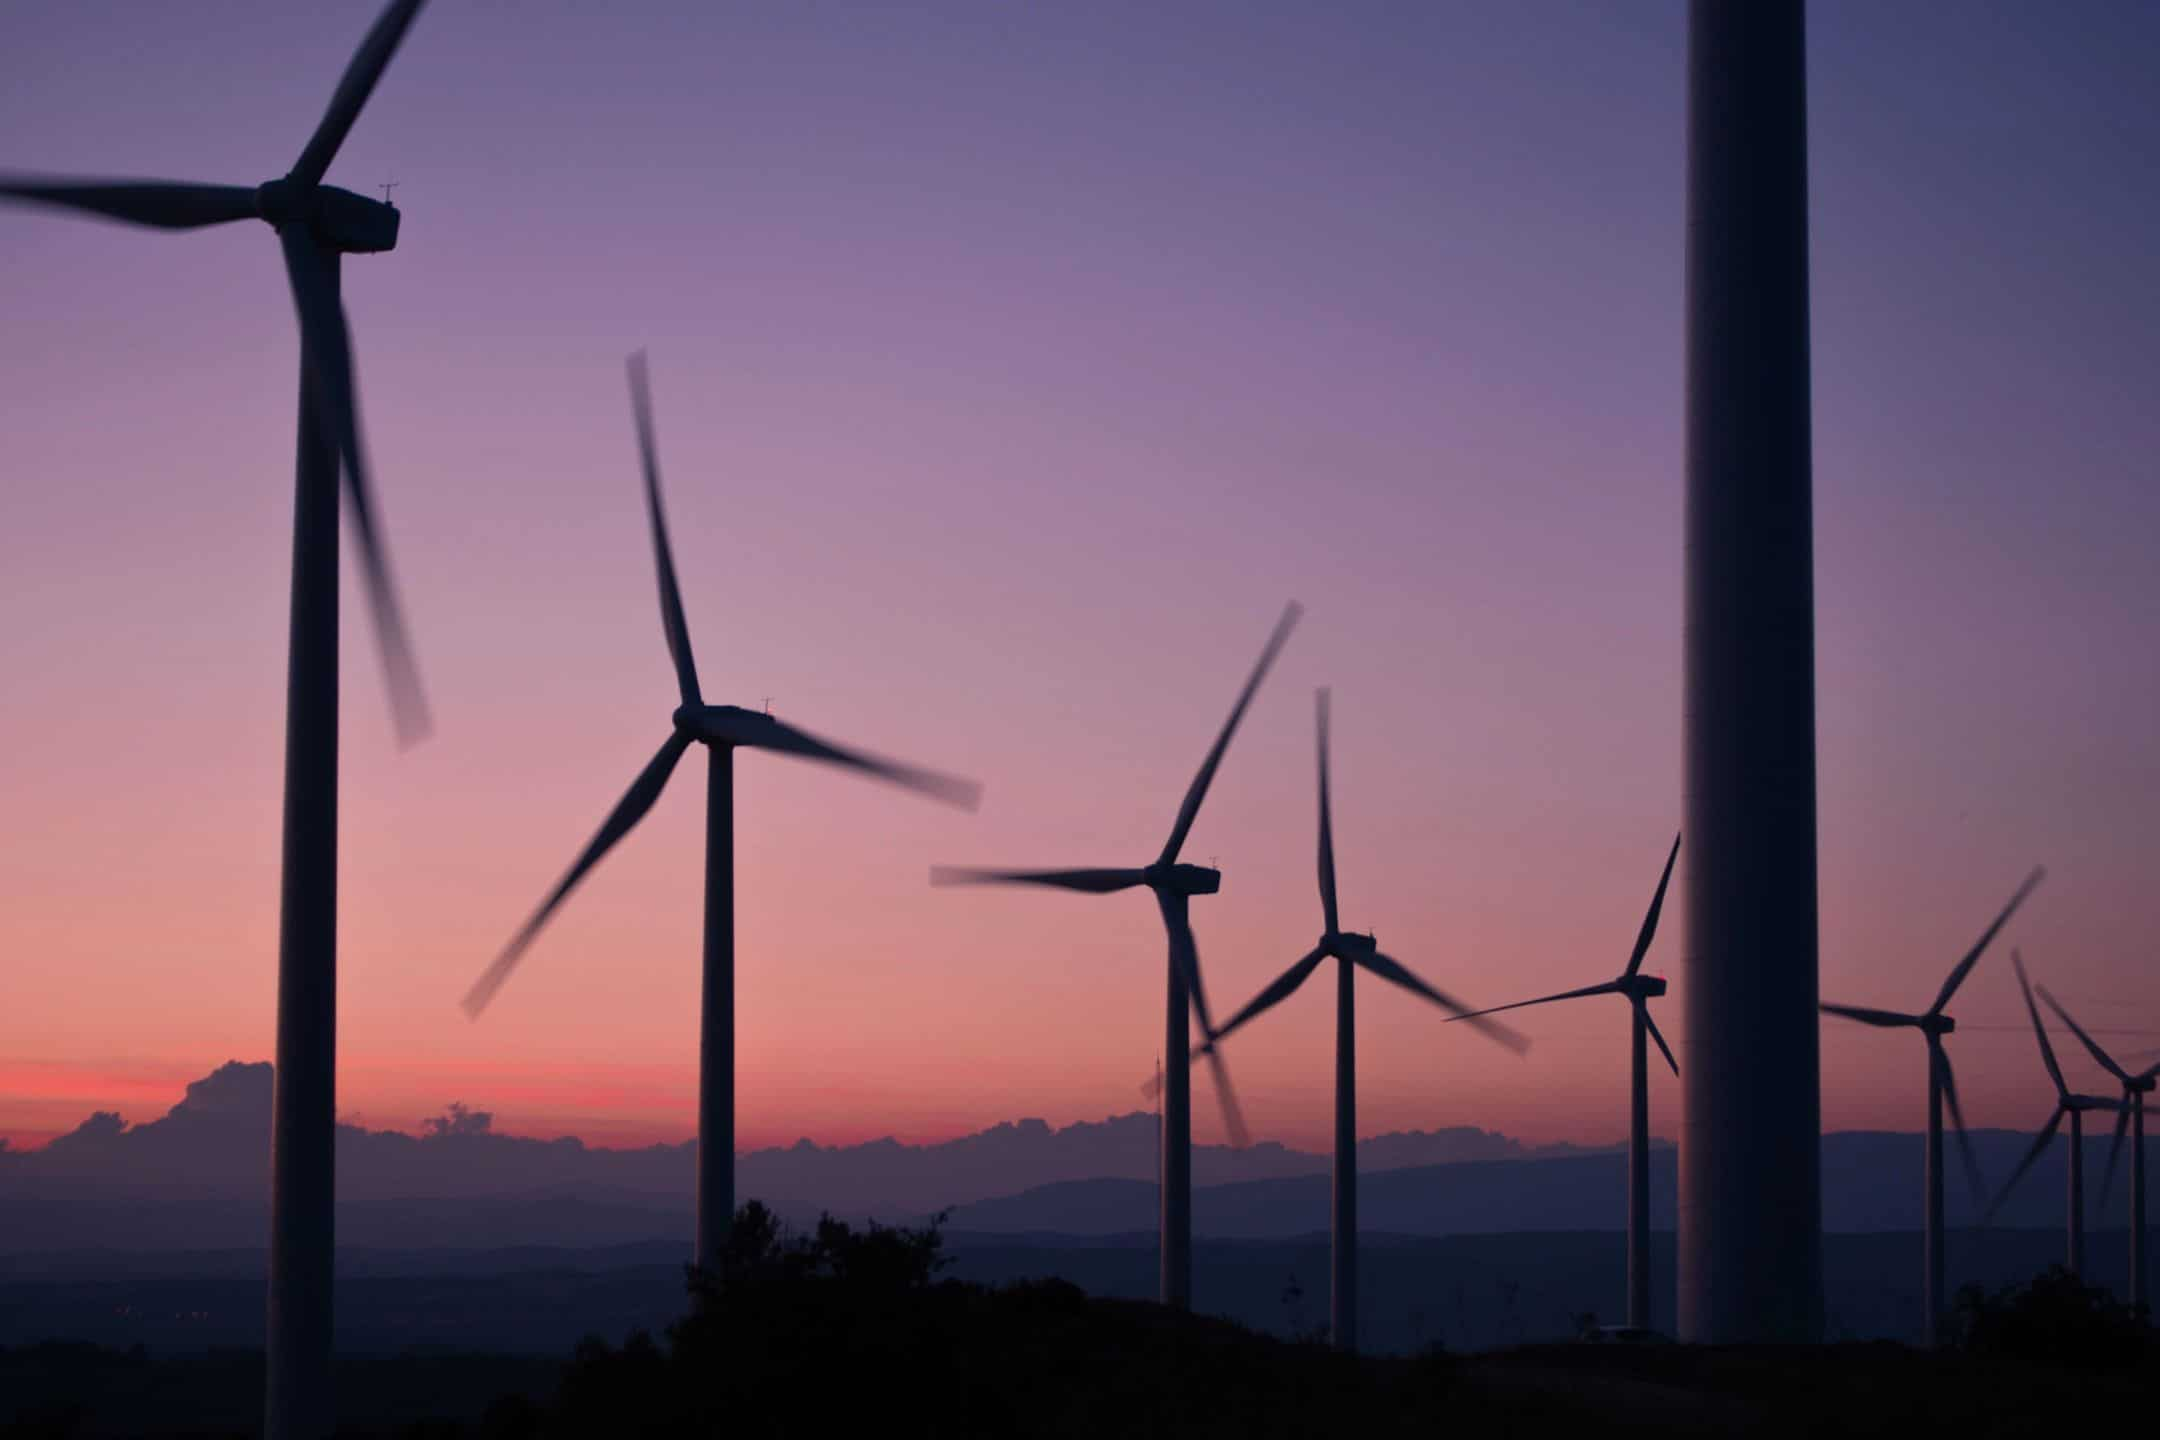 Wind turbines at dusk, a purple red colour in the sky